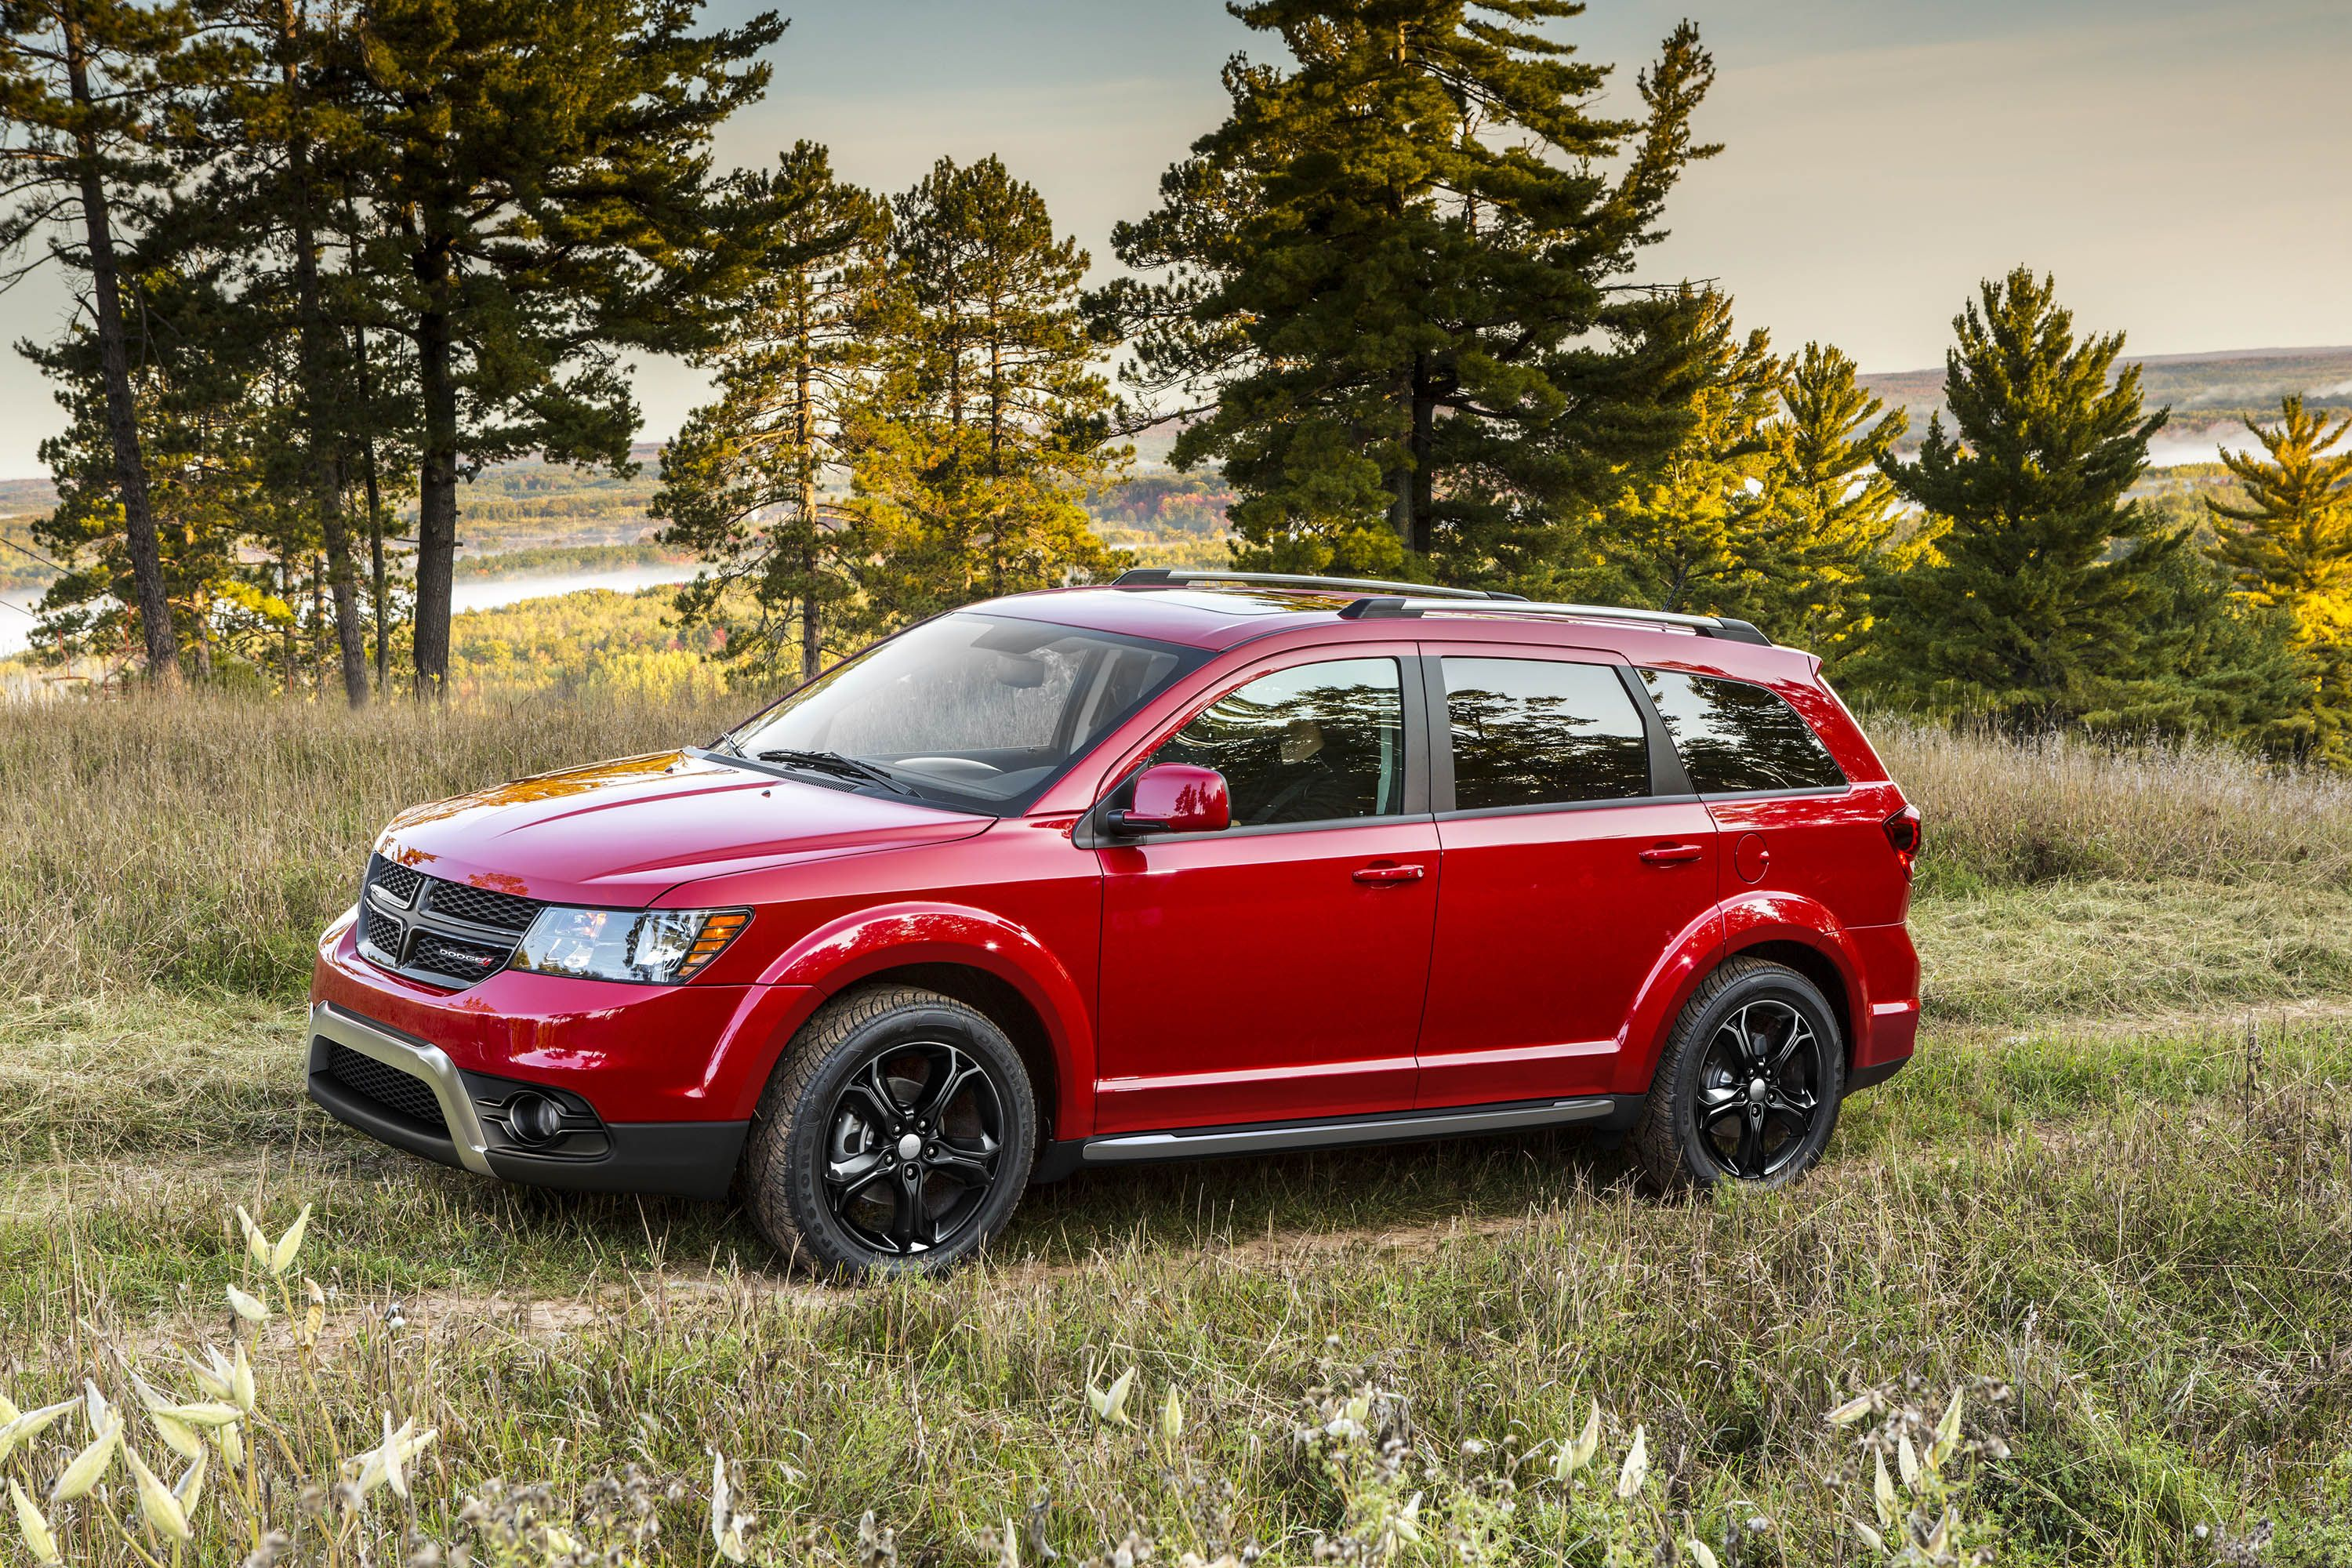 10 New Mid Size Suvs That Are The Cheapest To Own